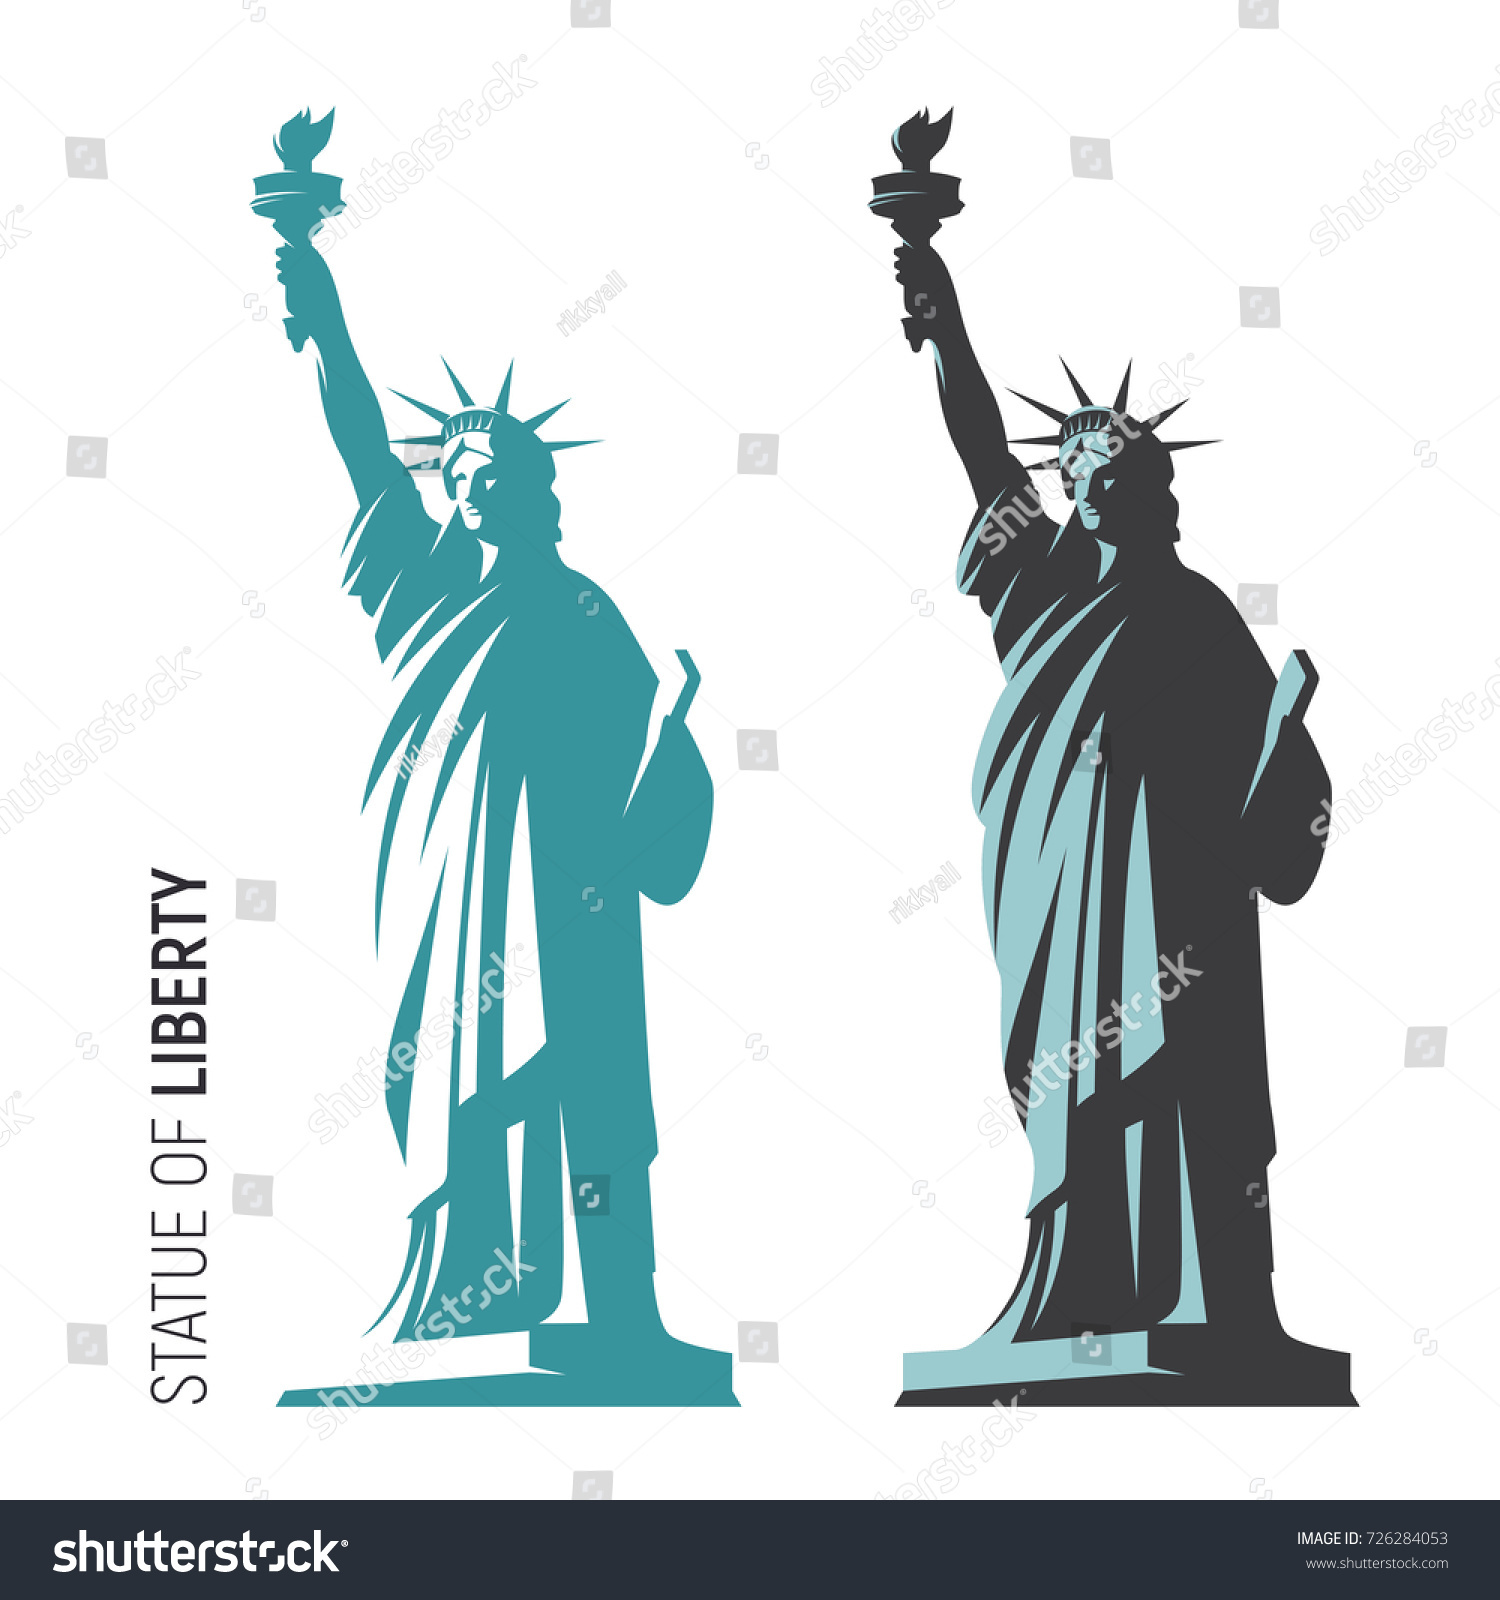 Vector illustration of the Statue of Liberty in New York City. Symbol, emblem, label, logo design.